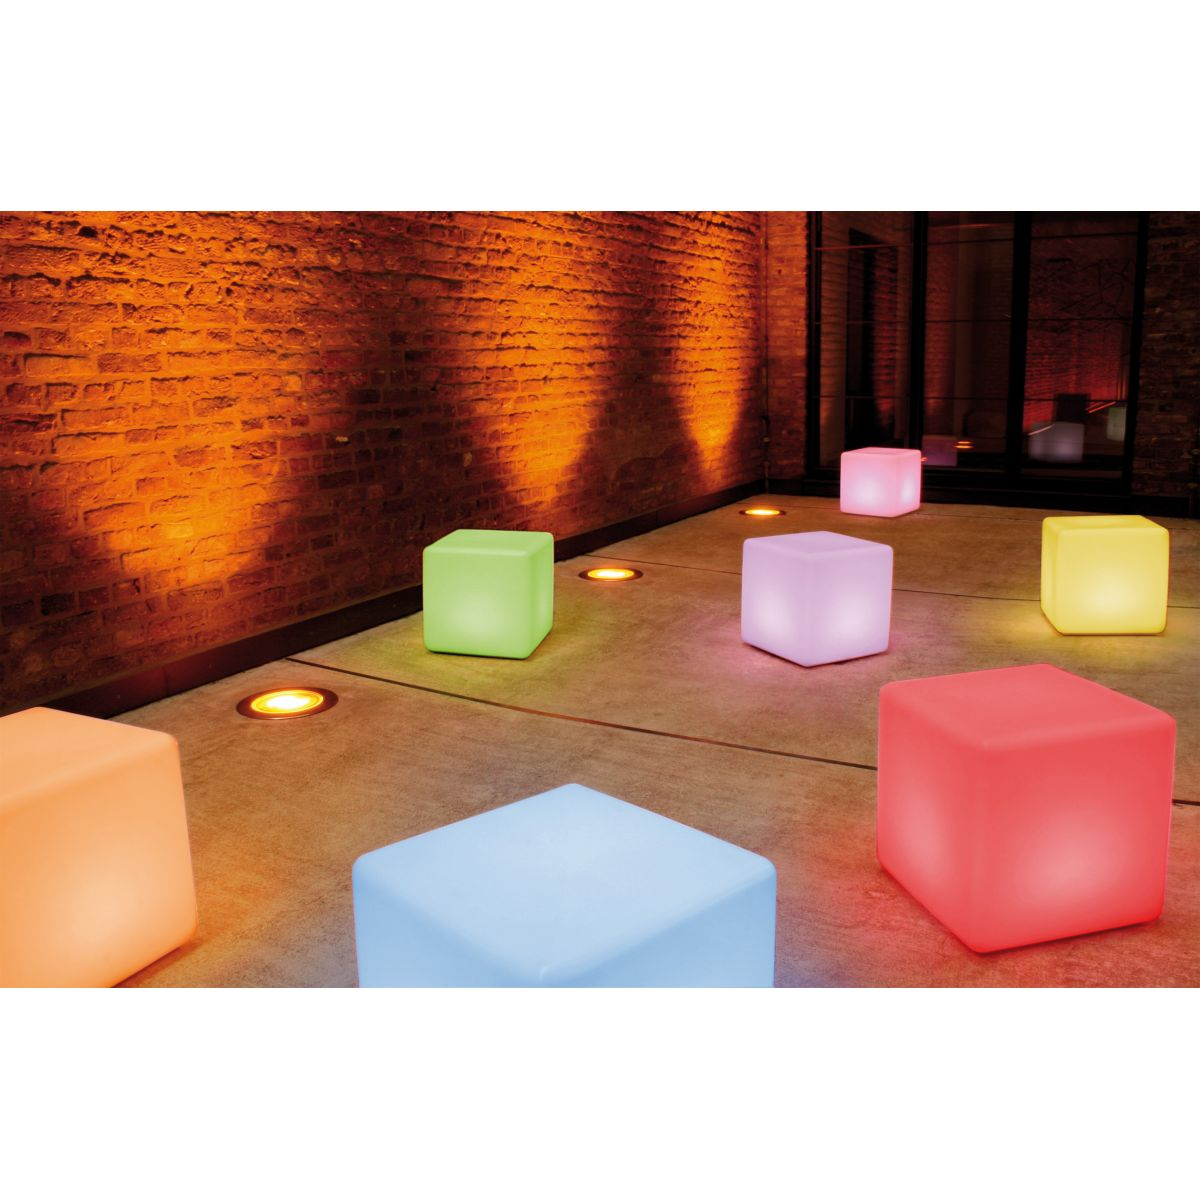 table basse cube int rieur lumineuse led rgb avec batterie moree zendart design. Black Bedroom Furniture Sets. Home Design Ideas